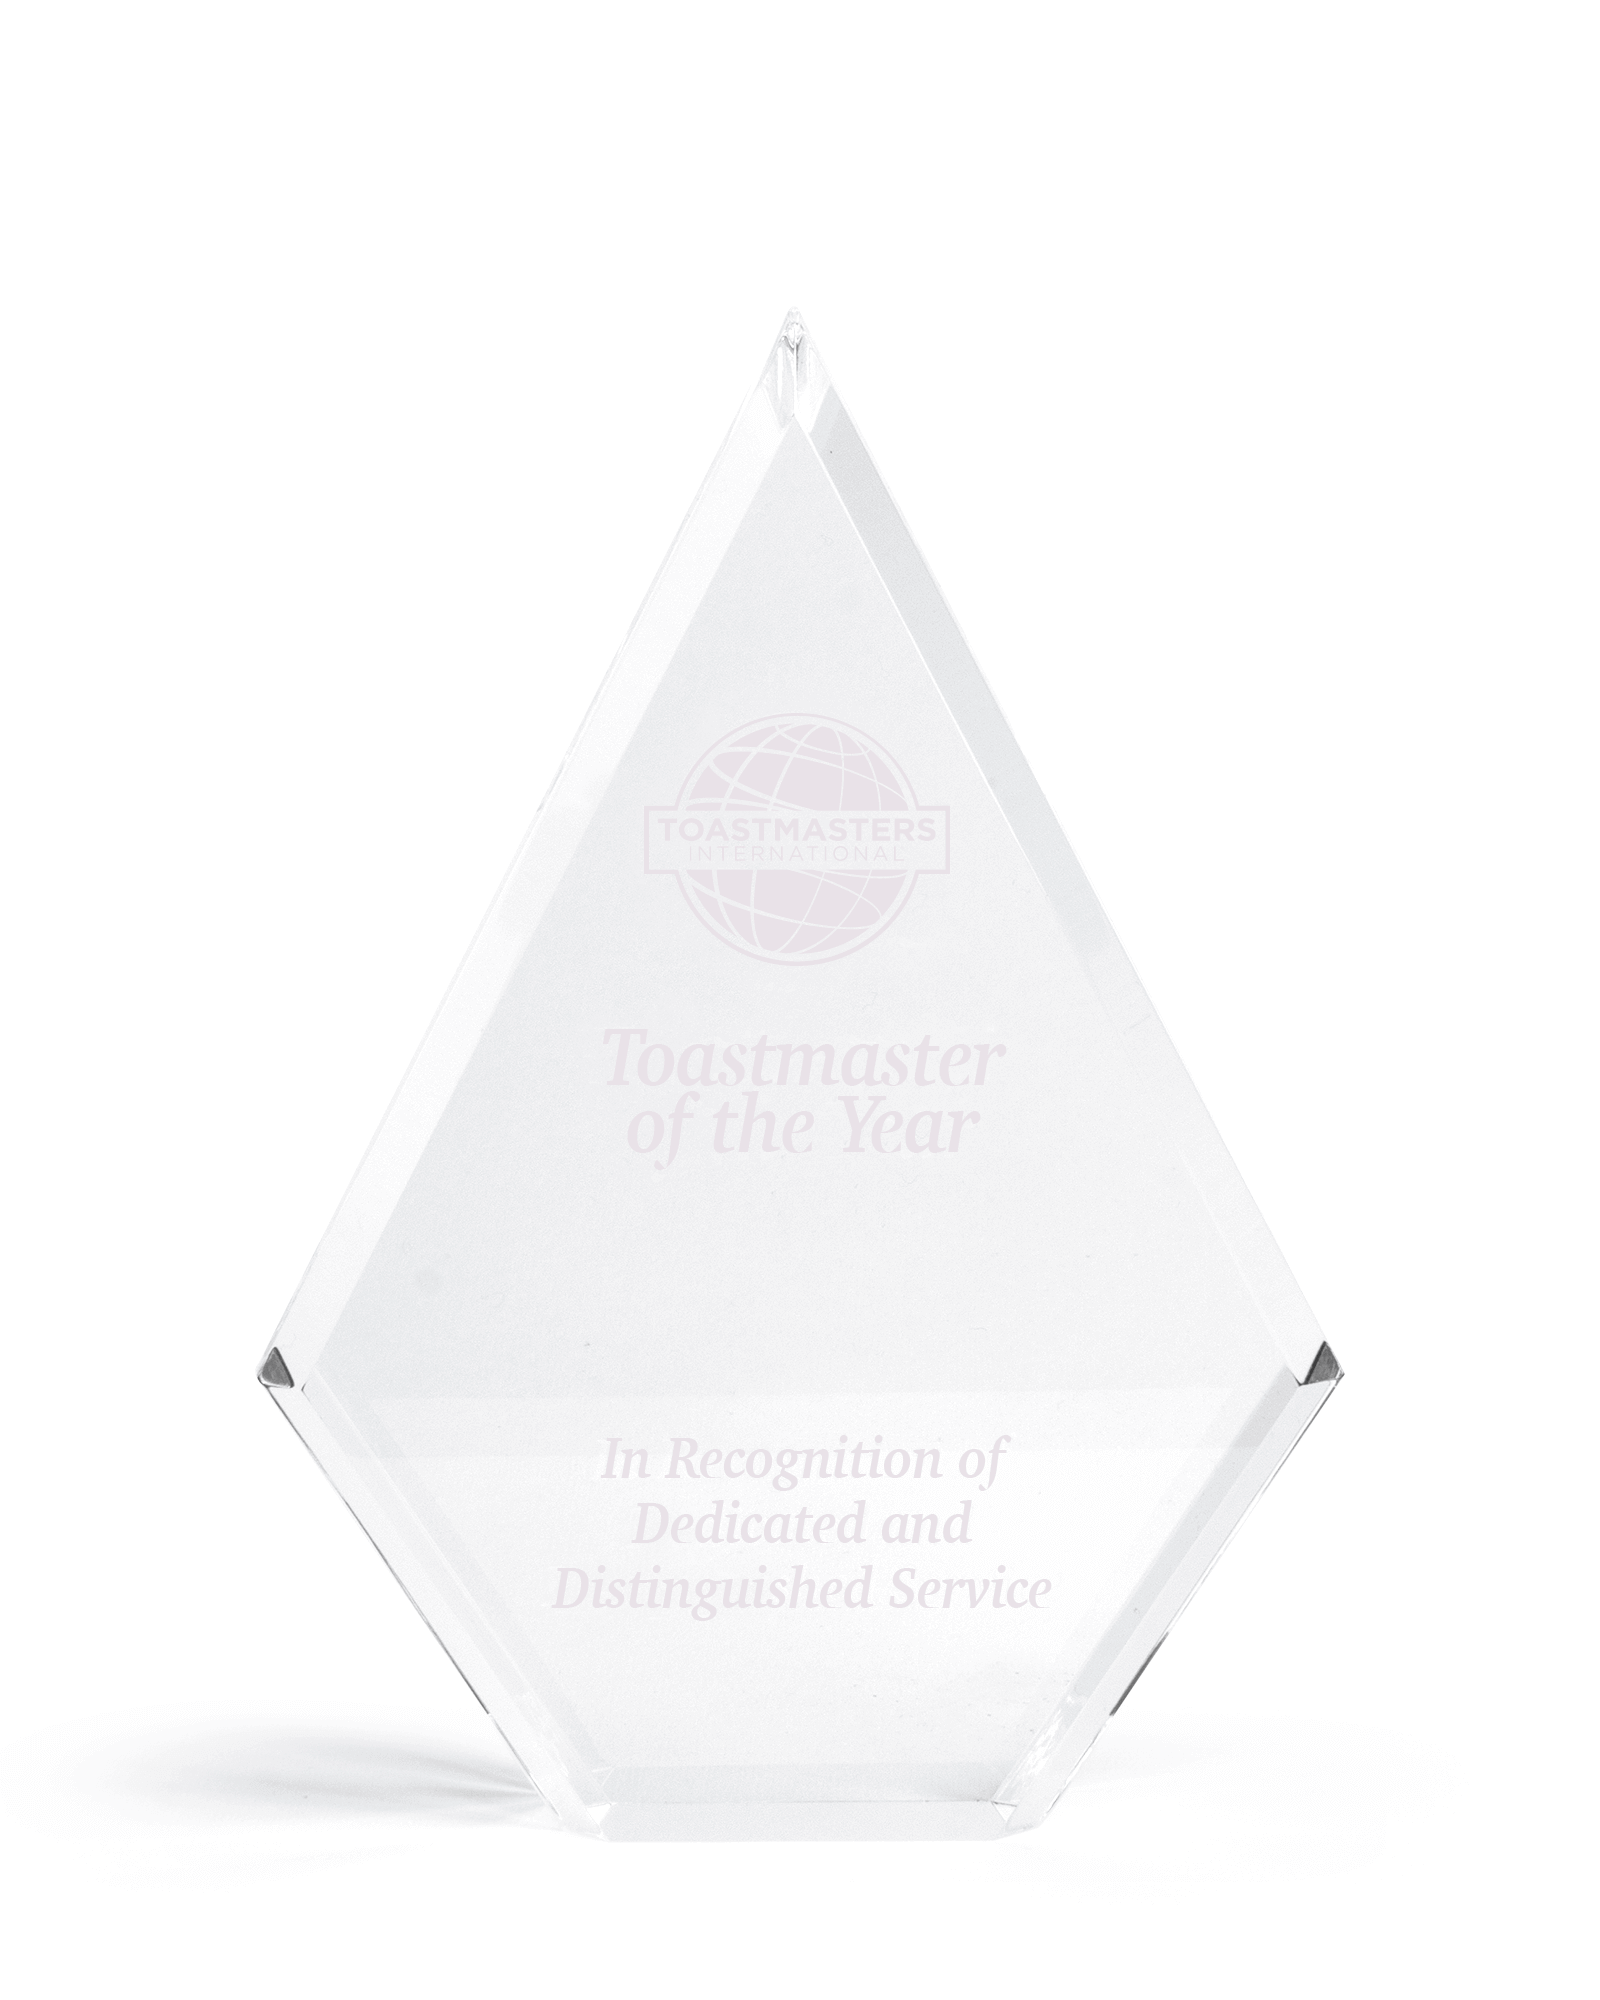 Award featuring Toastmaster of the Year Award and In recognition of dedicated and distinguished service text